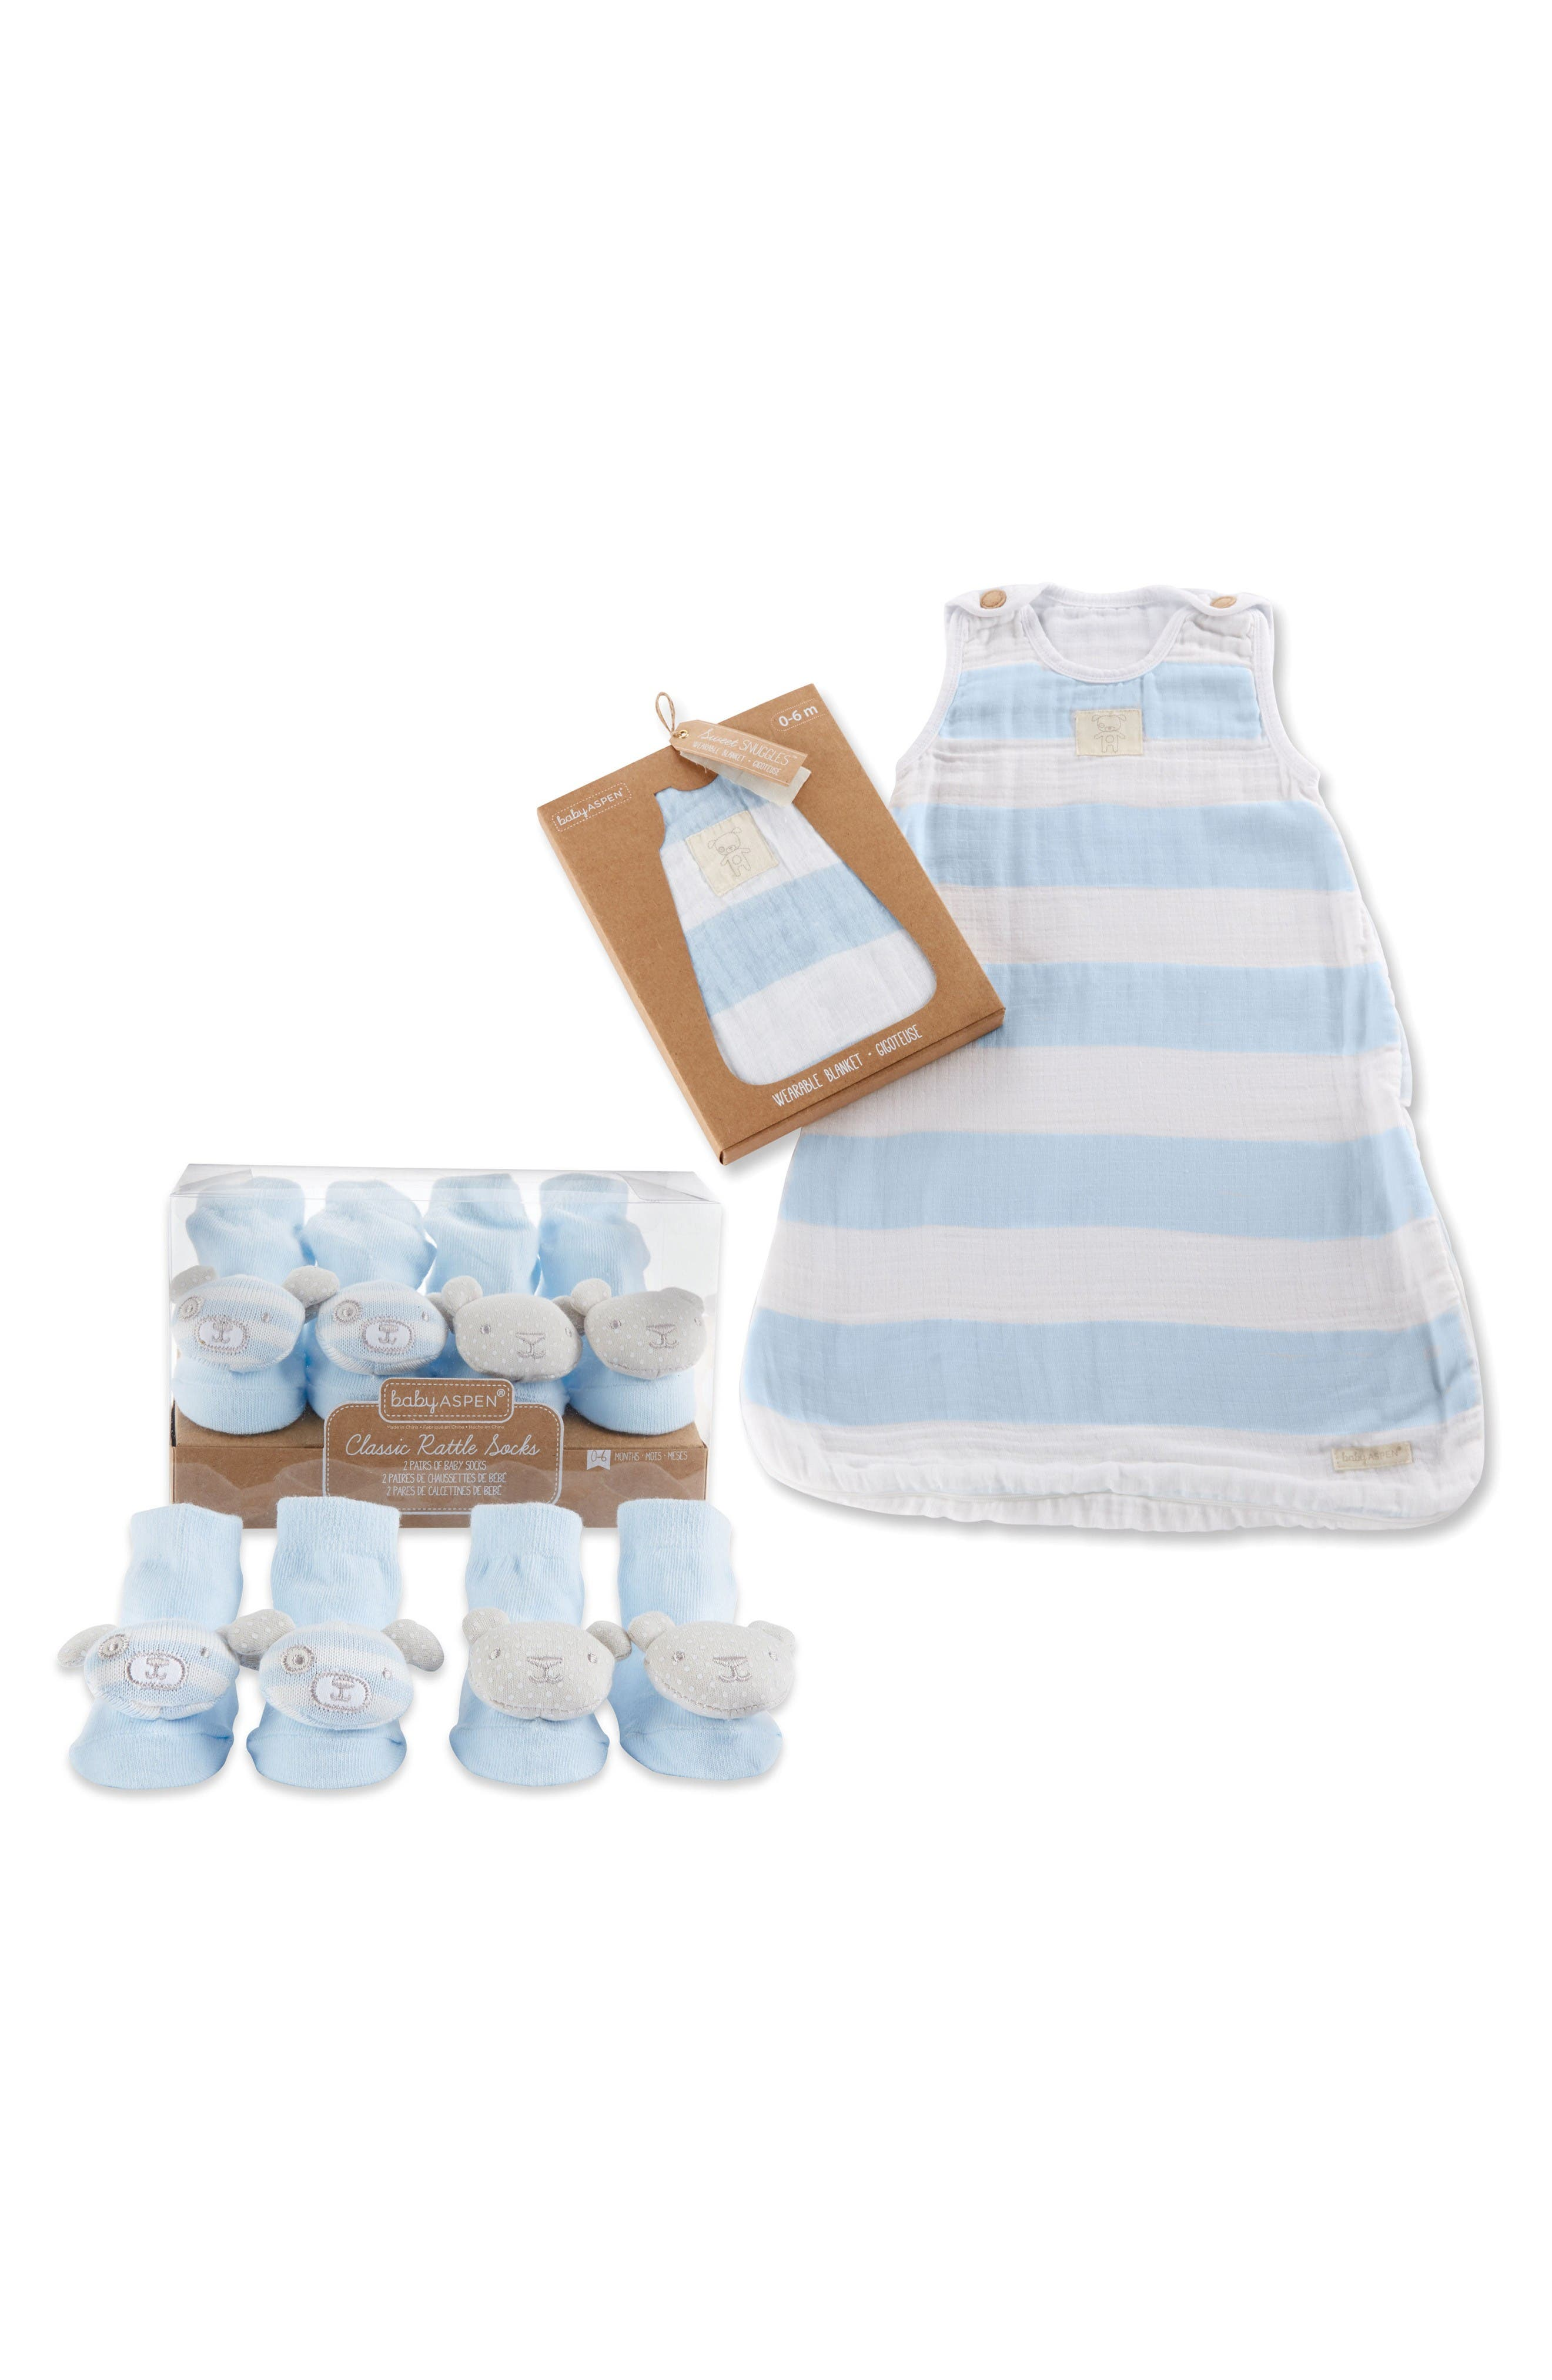 Alternate Image 1 Selected - Baby Aspen Sweet Snuggles 2-Pack Socks & Wearable Blanket Set (Baby)